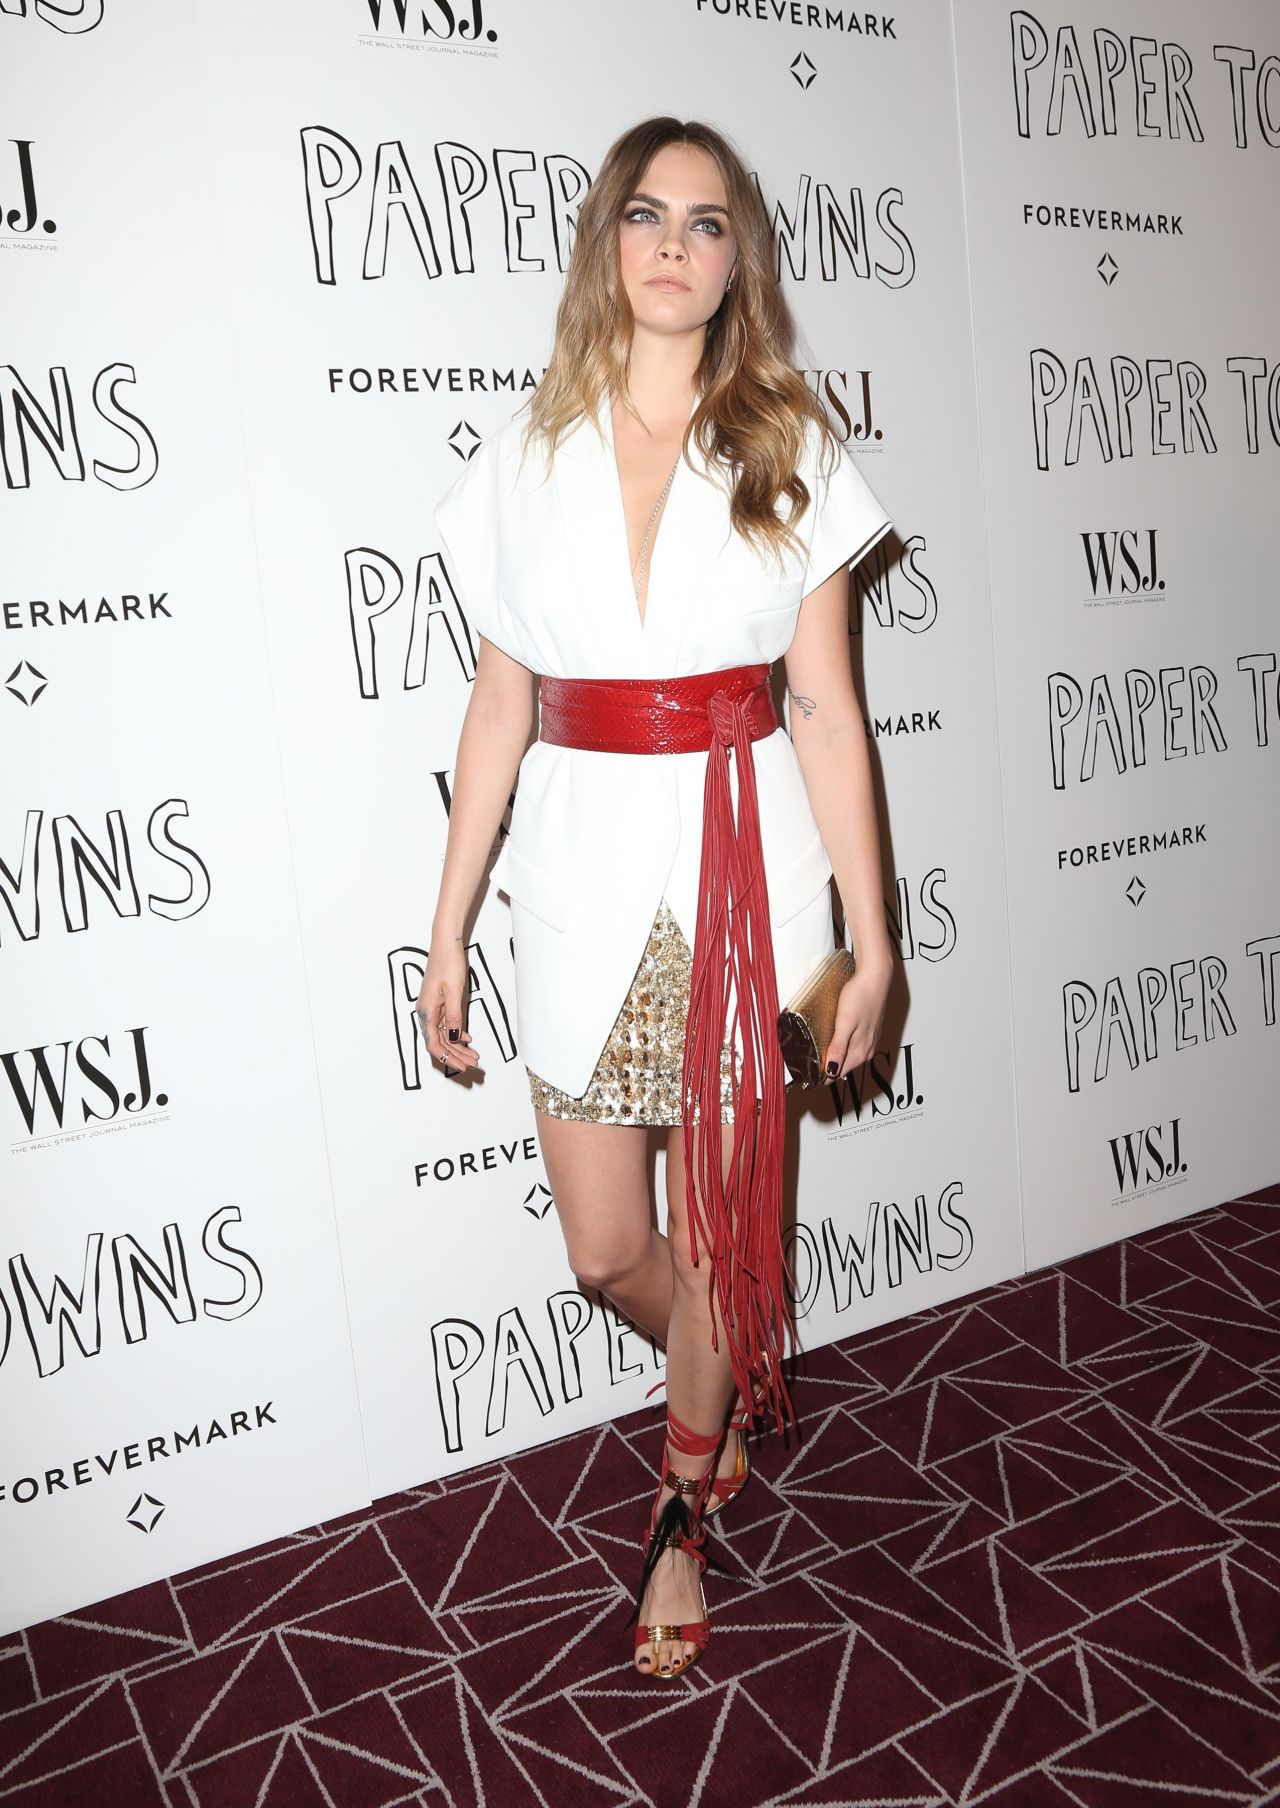 cara-delevingne-paper-towns-screening-in-west-hollywood_3